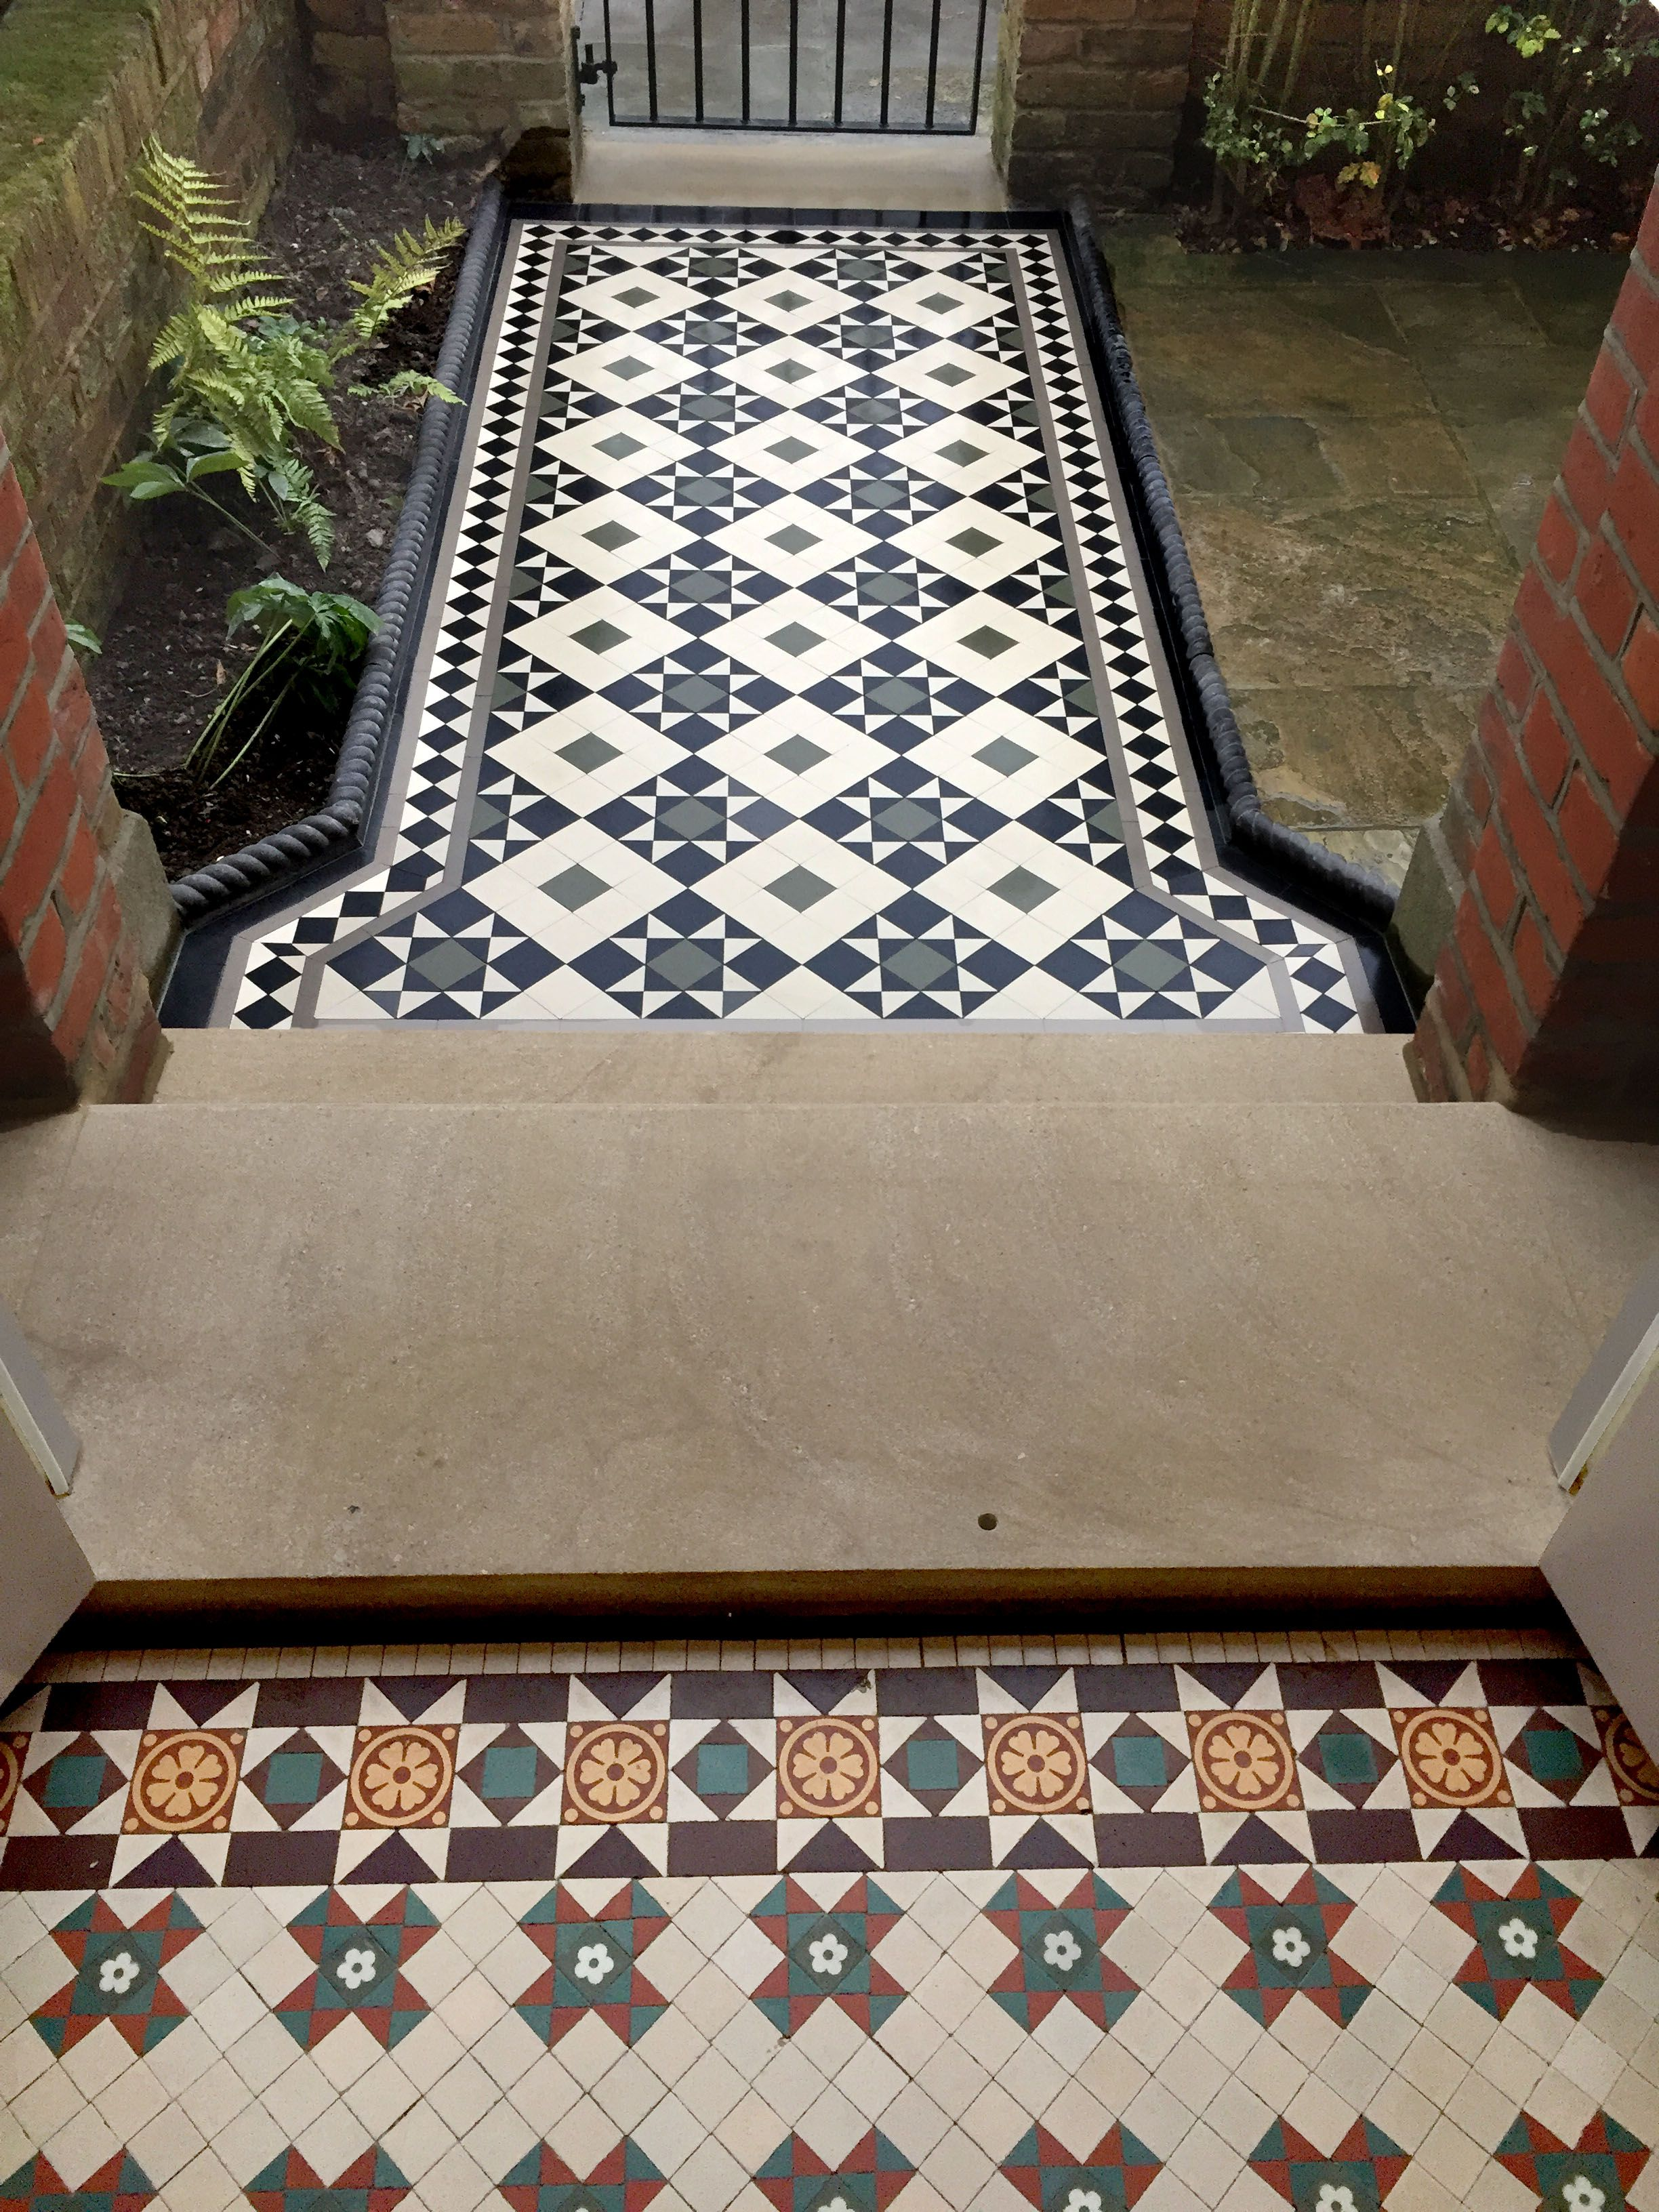 London Mosaic Victorian Tiles London Mosaic Victorian Floor Tiles Click On The Image For More Information Cont Tiles London Victorian Tiles Tile Floor